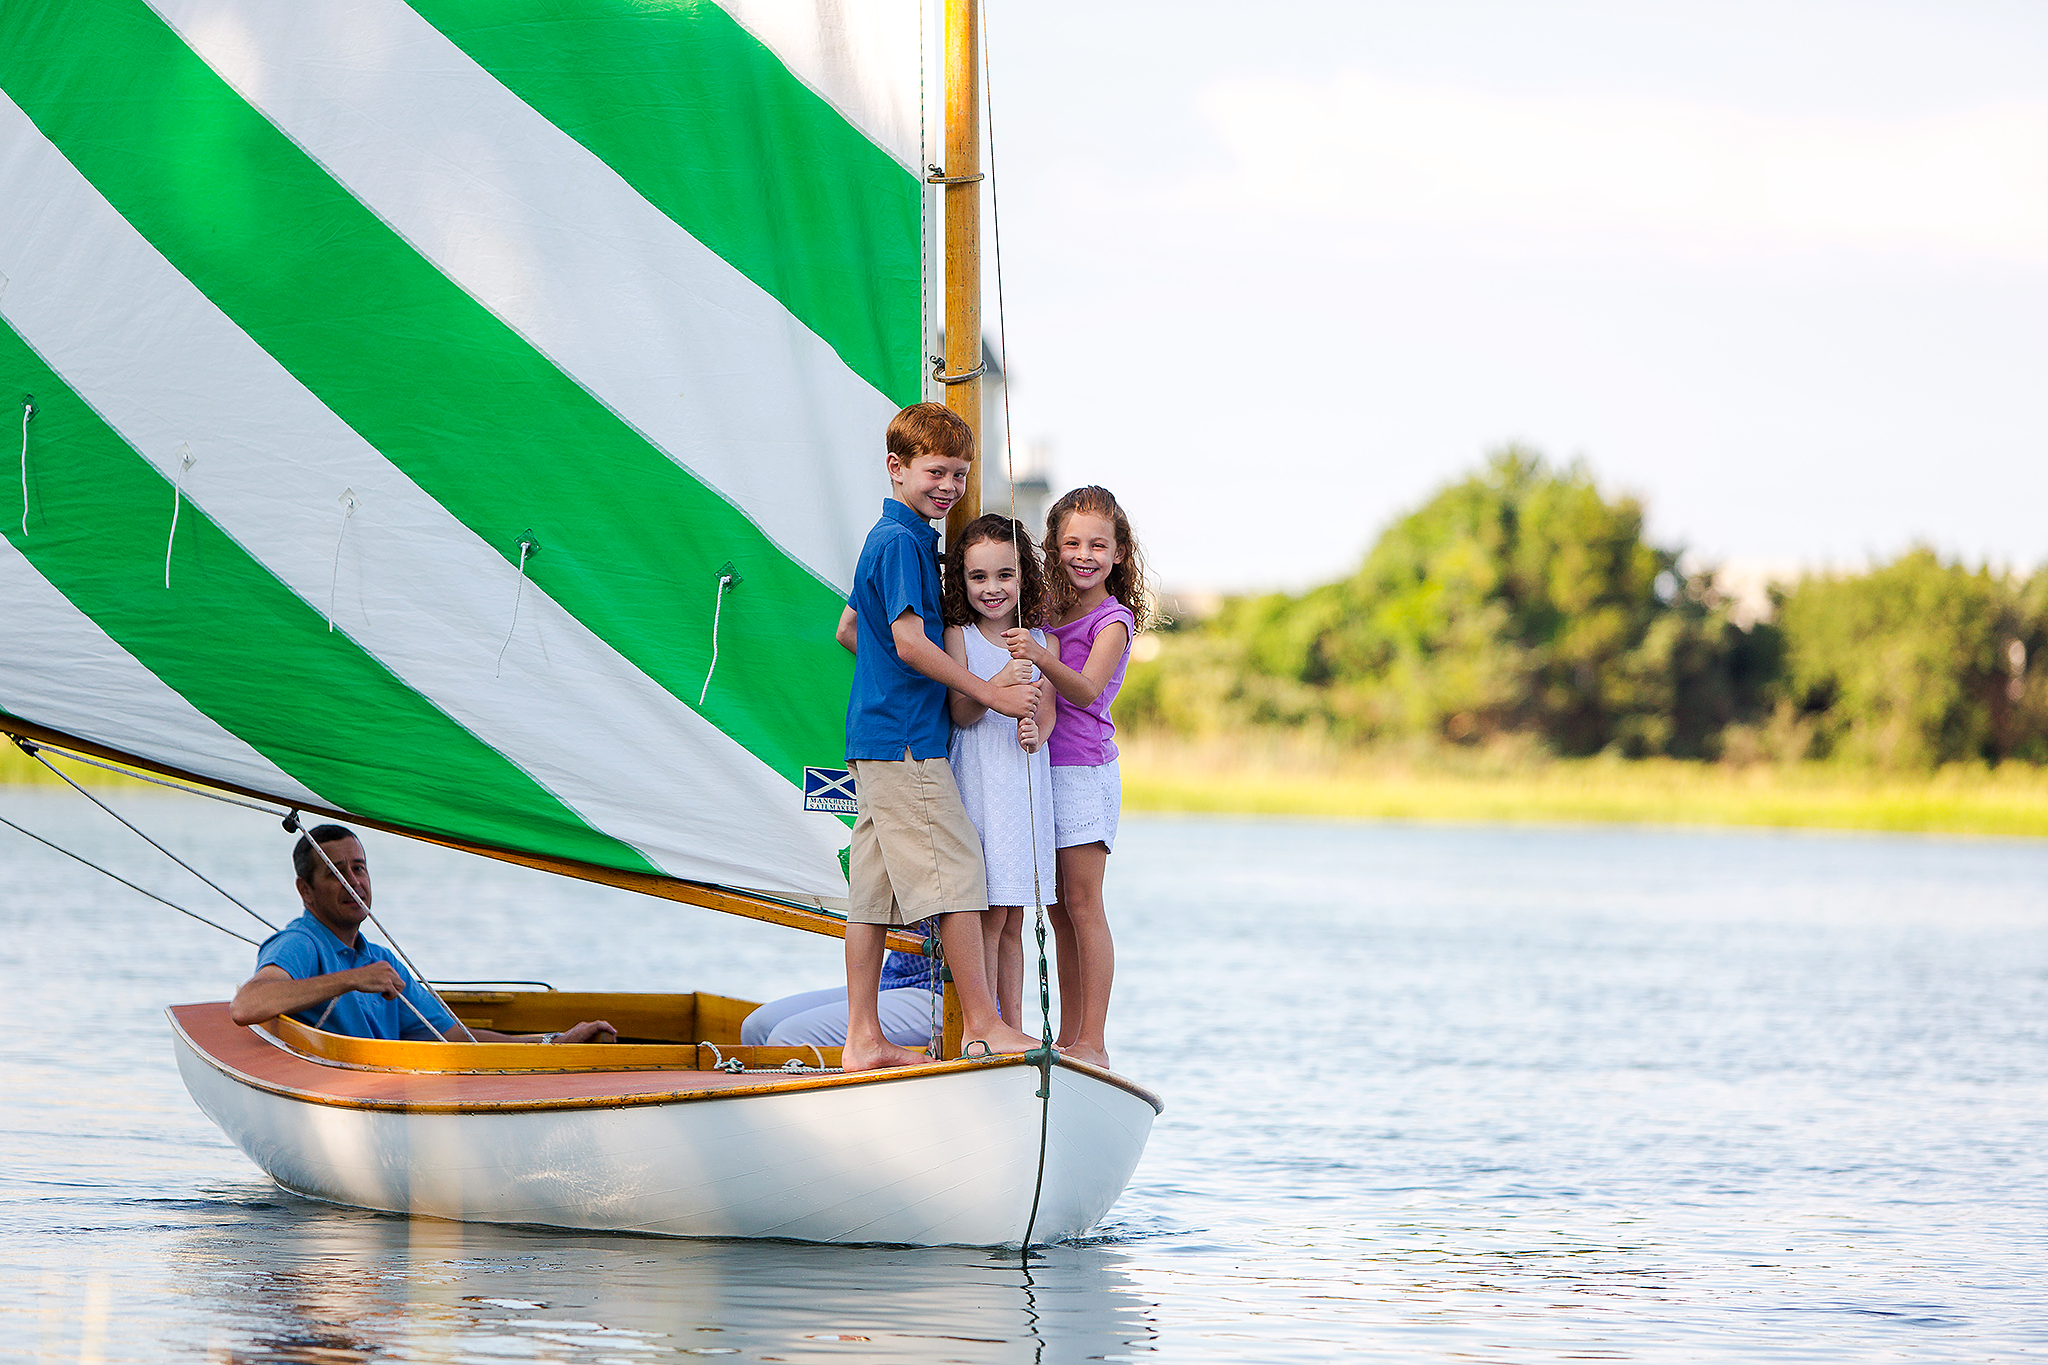 brother and sisters standing in front of sailboat while dad watches